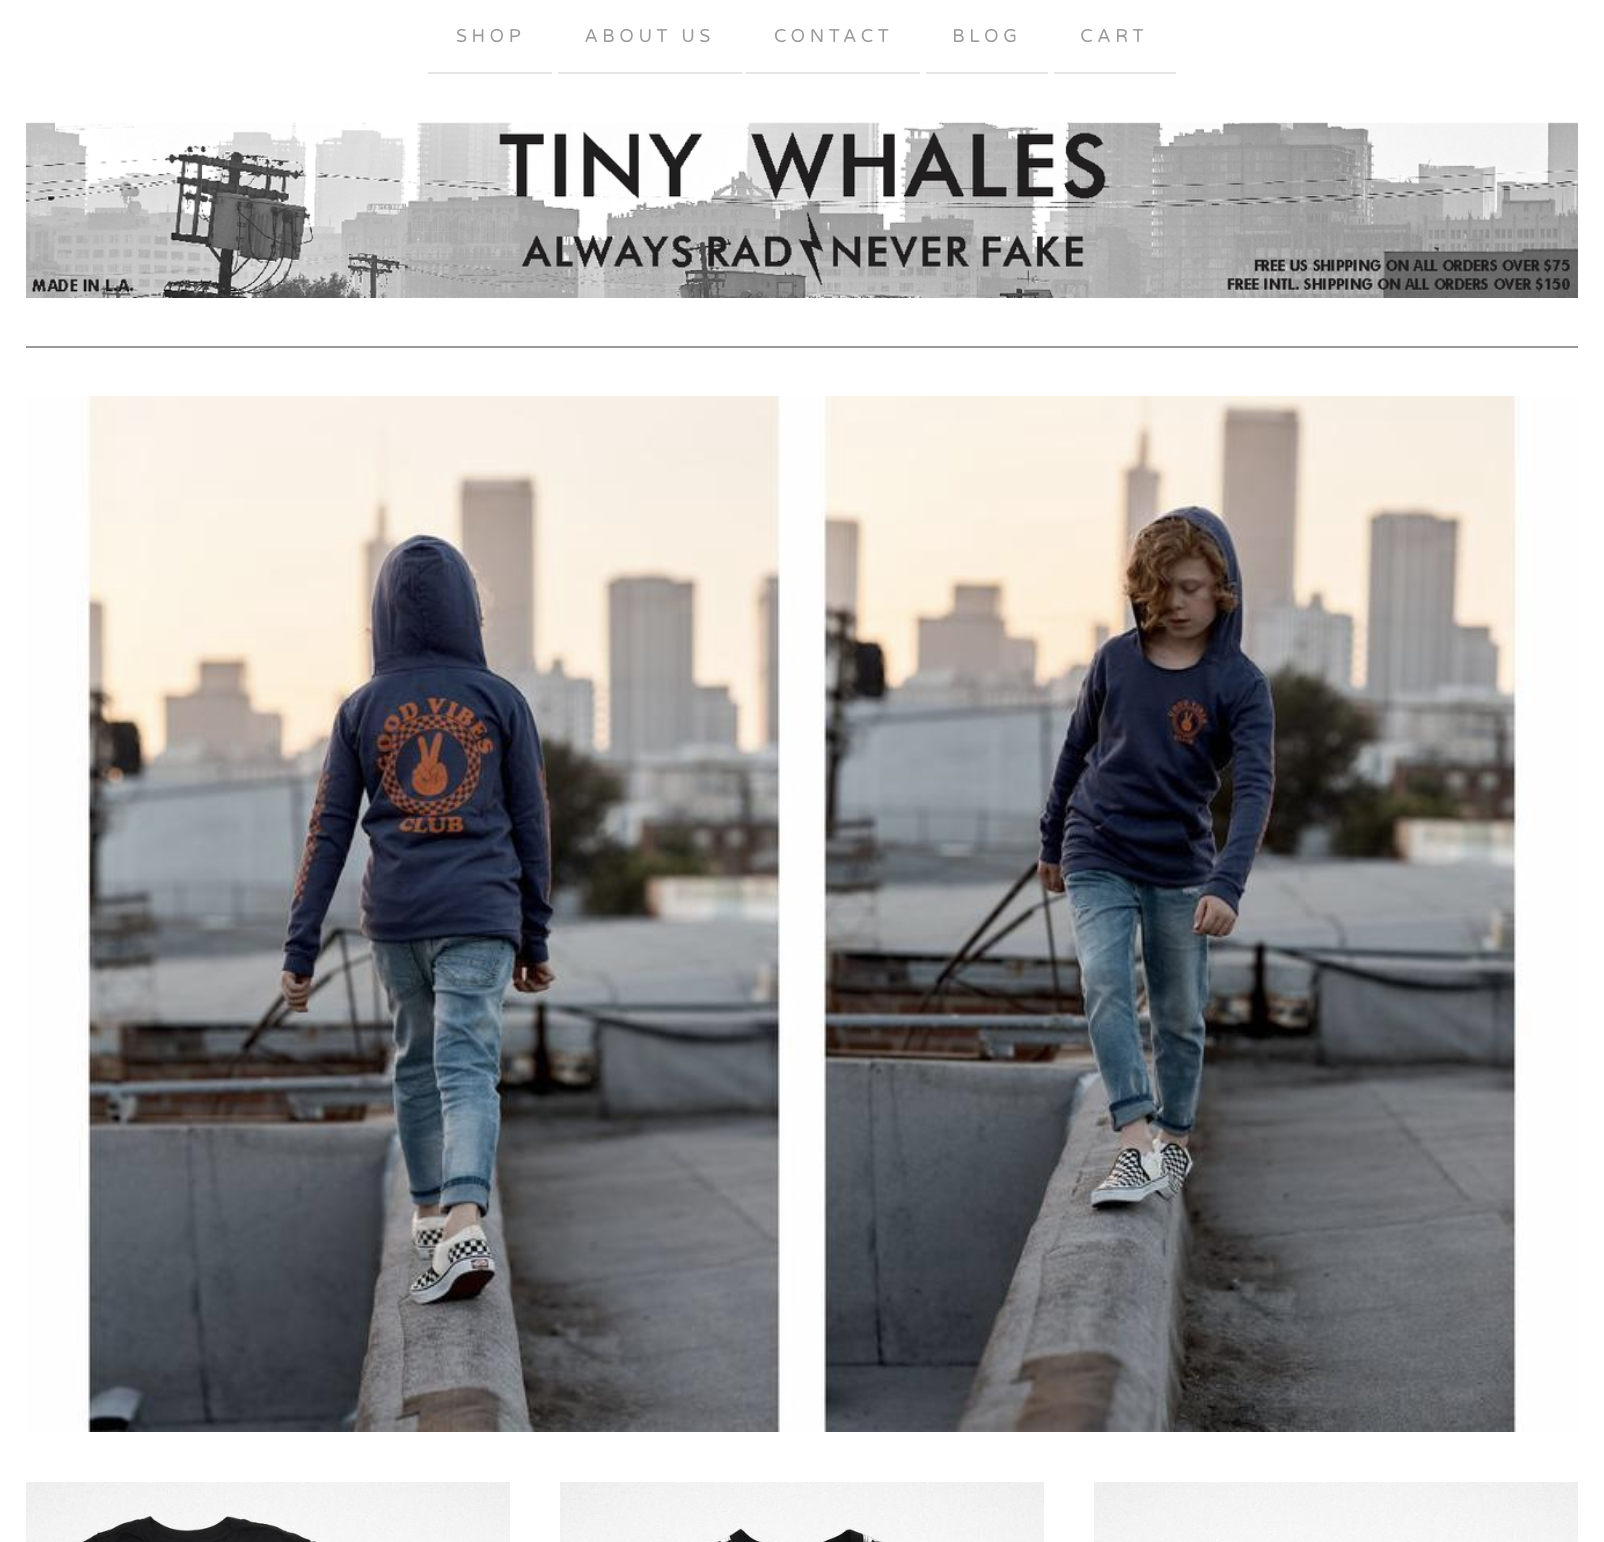 Kid in blue hoodie walks along a rooftop for Tiny Whales